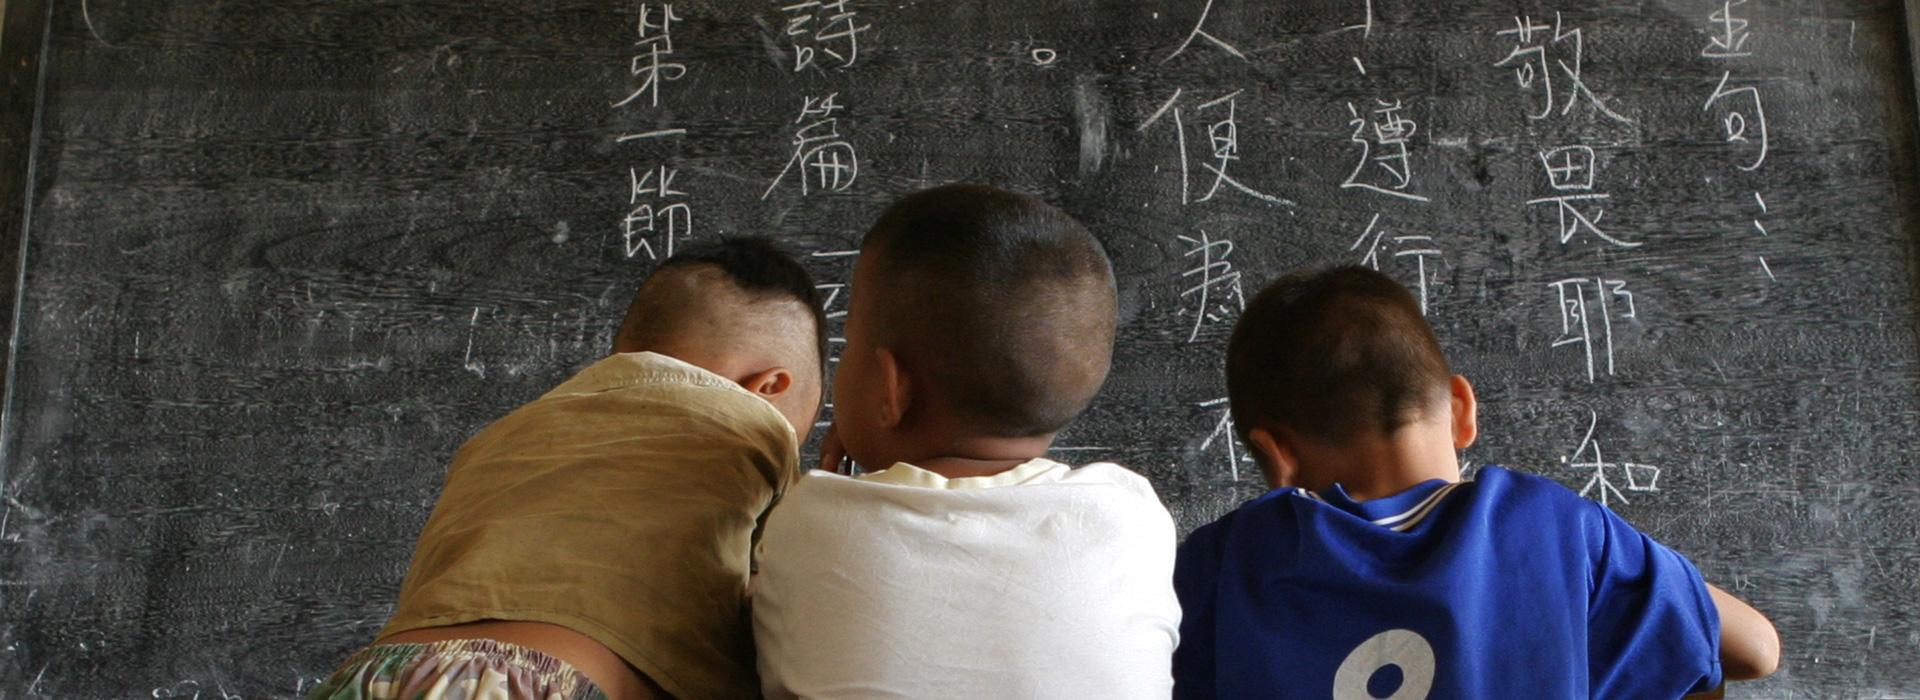 Asian children writing on a chalkboard